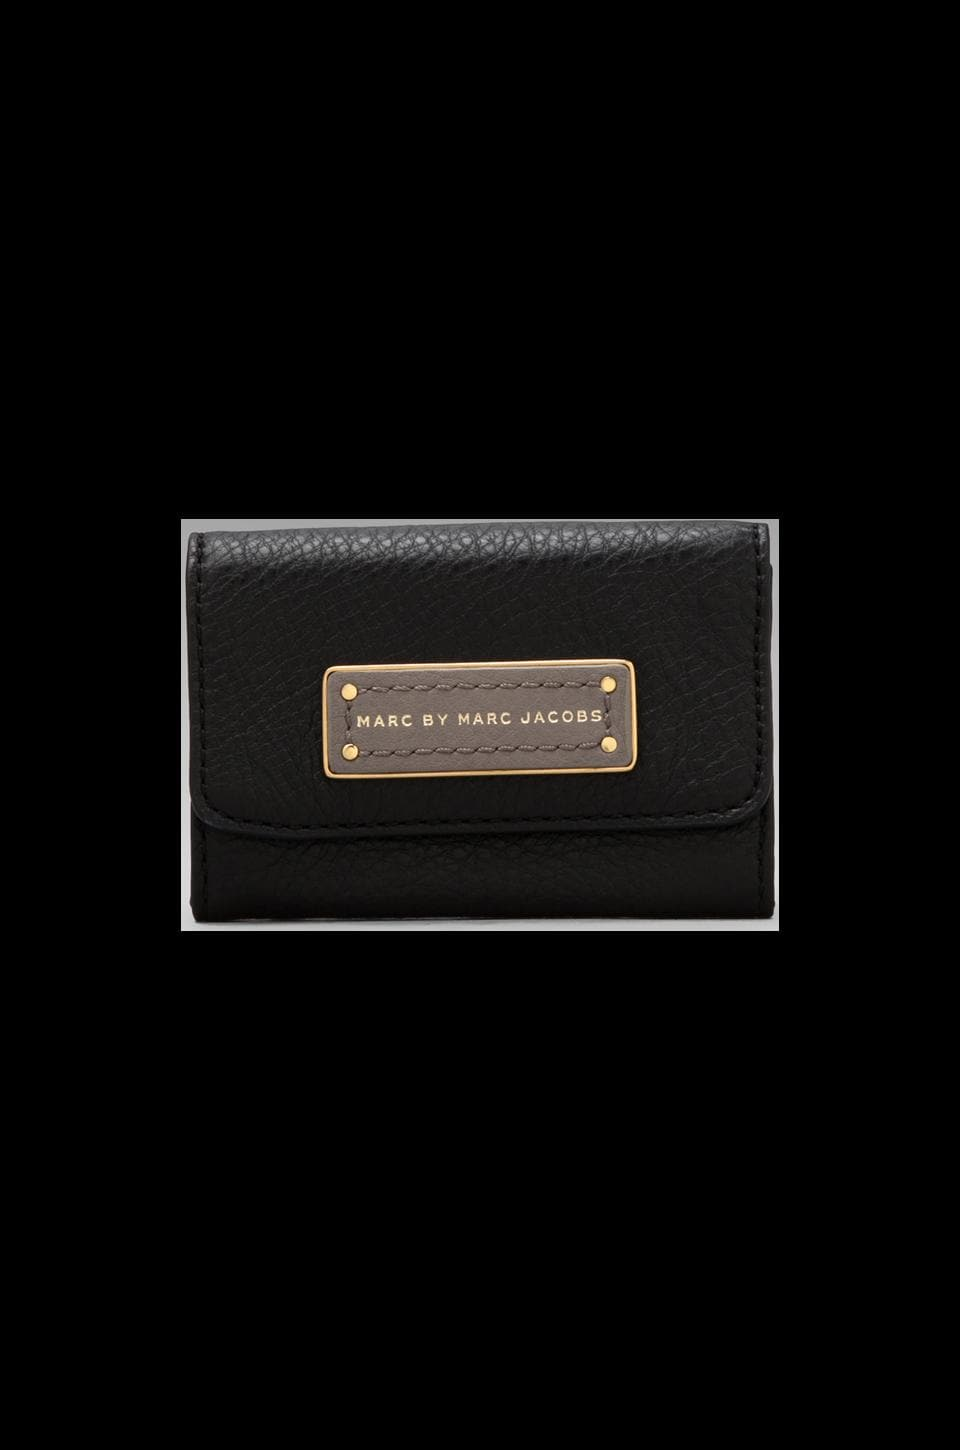 Marc by Marc Jacobs Too Hot to Handle Colorblocked Card Case in Black Multi